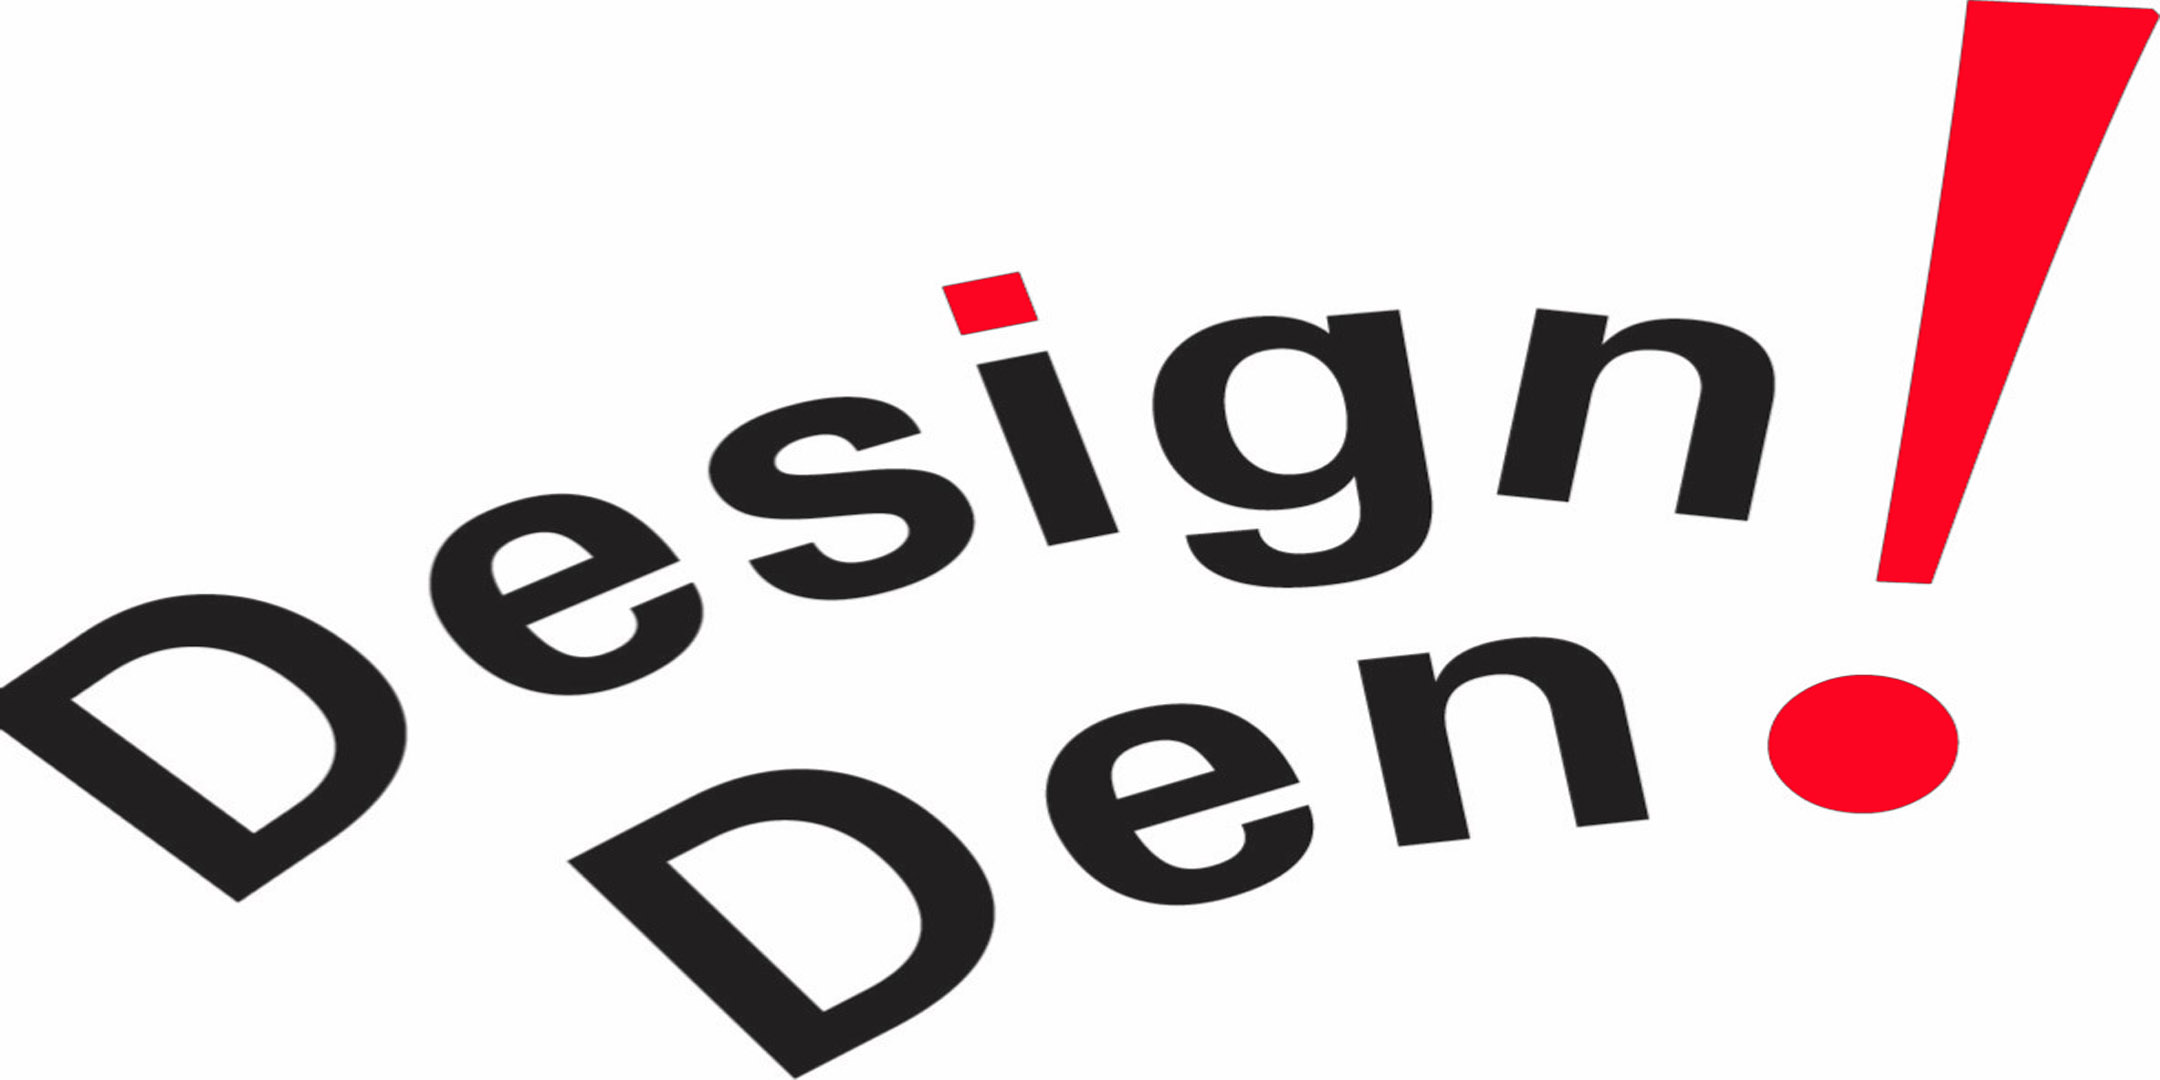 Welcome to the Design Den!